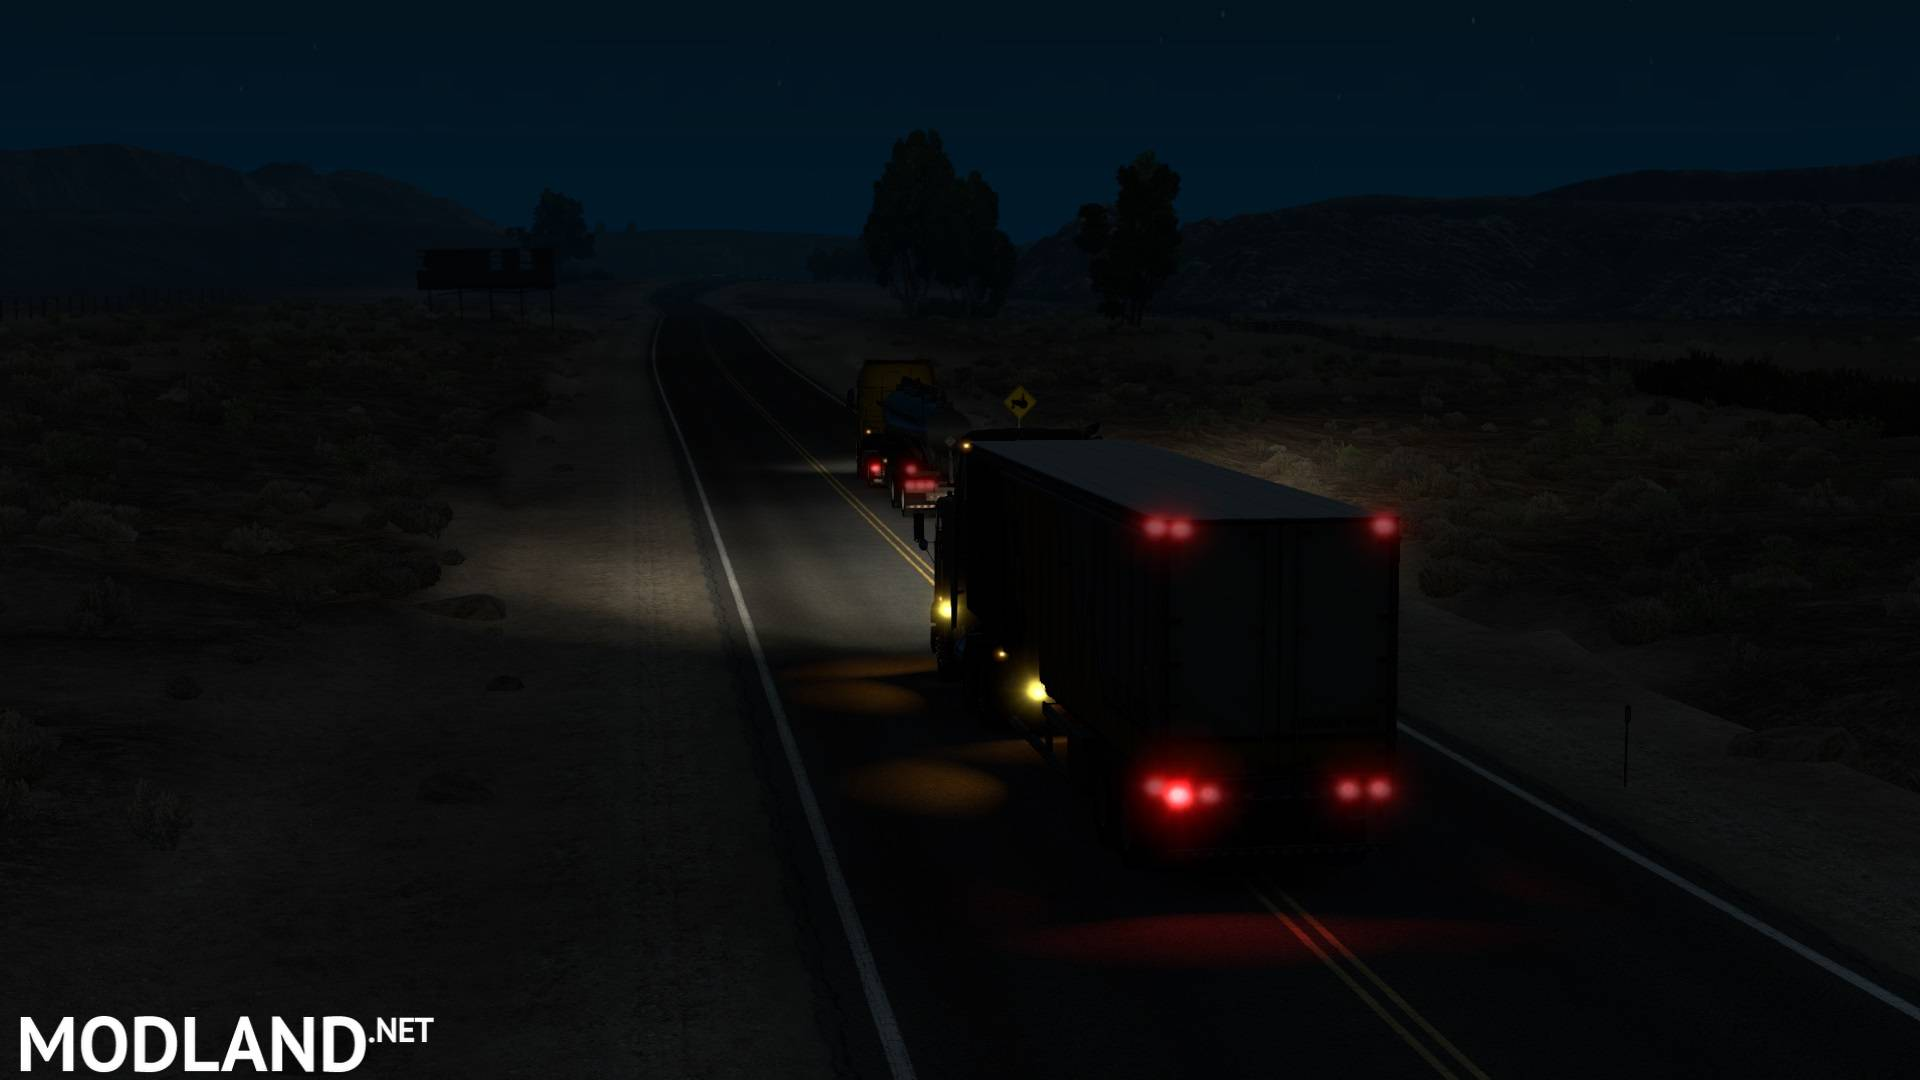 USA Realistic Miles, KM, Time & Better XP Tweak (FIXED) mod for American Truck Simulator, ATS